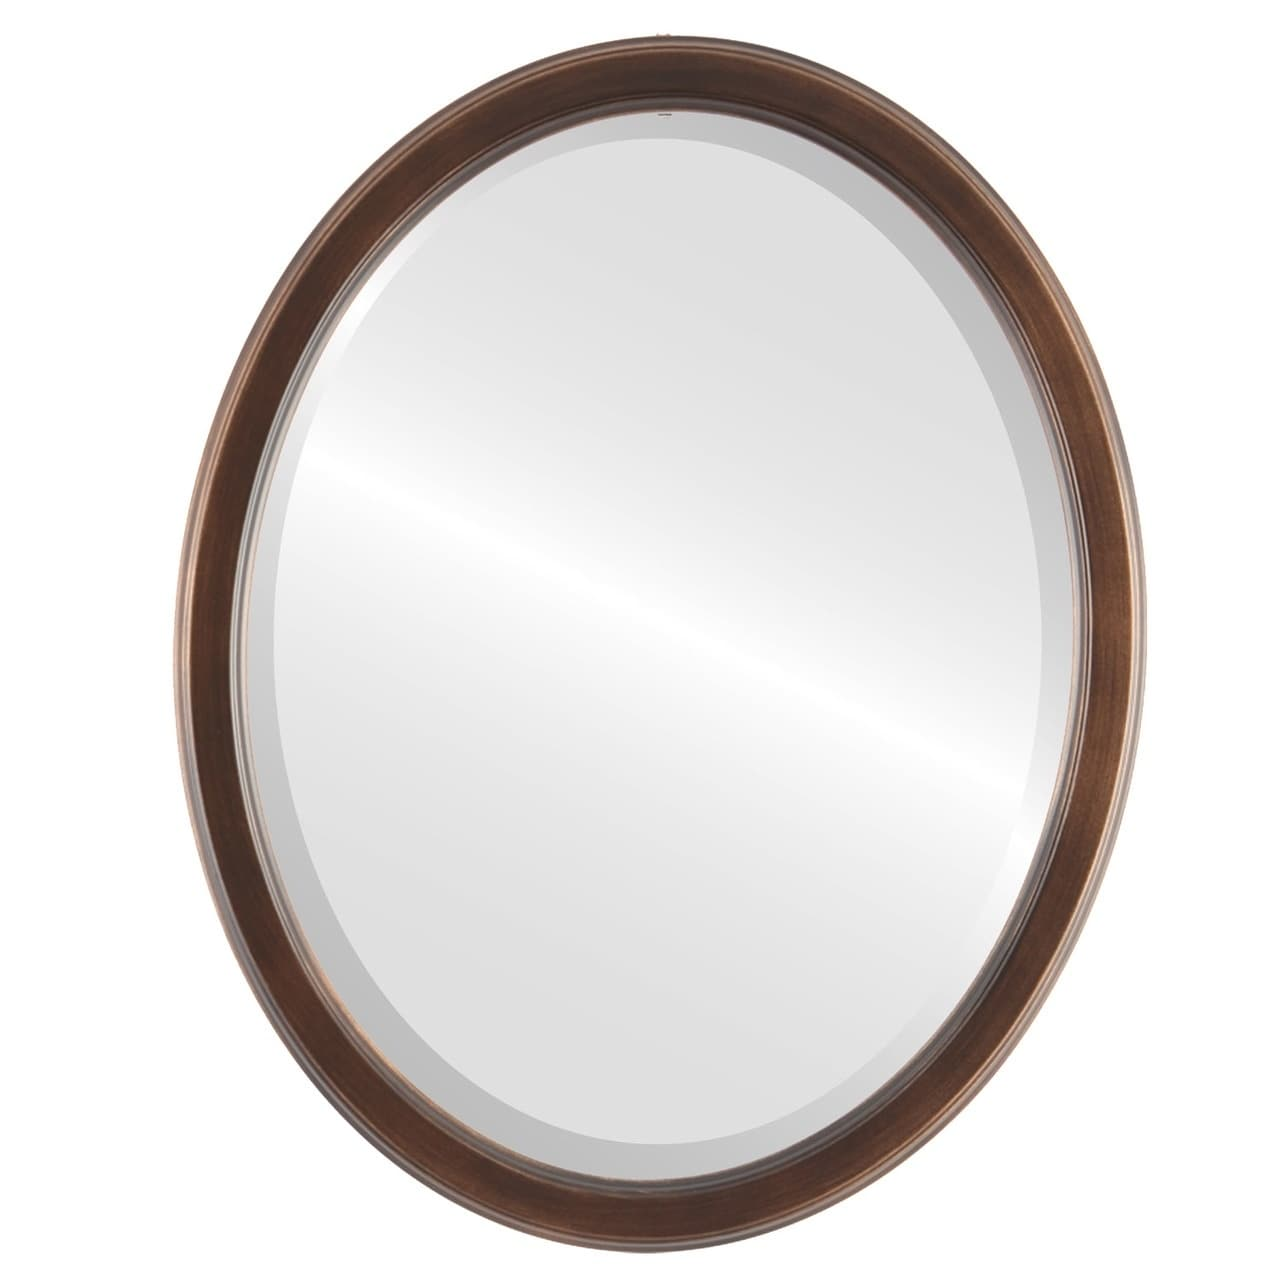 The Oval and Round Mirror Store Toronto Rubbed Antique Bronze Wood Framed Oval Mirror by Overstock